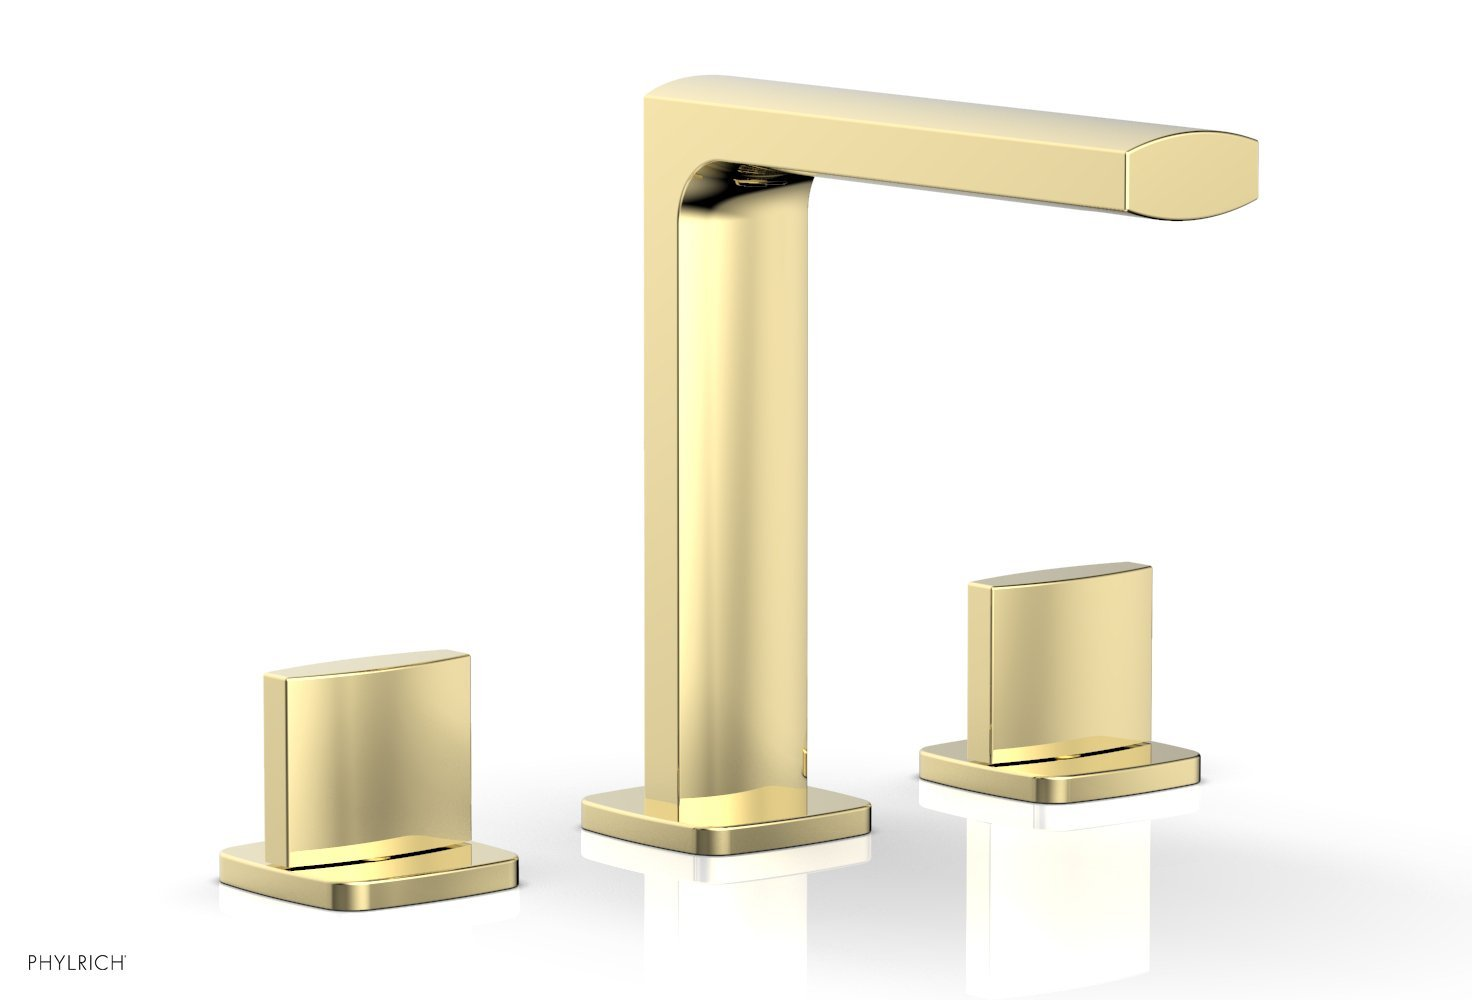 Phylrich 181-01-003 RADI Widespread Faucet - Blade Handle High Spout - Polished Brass